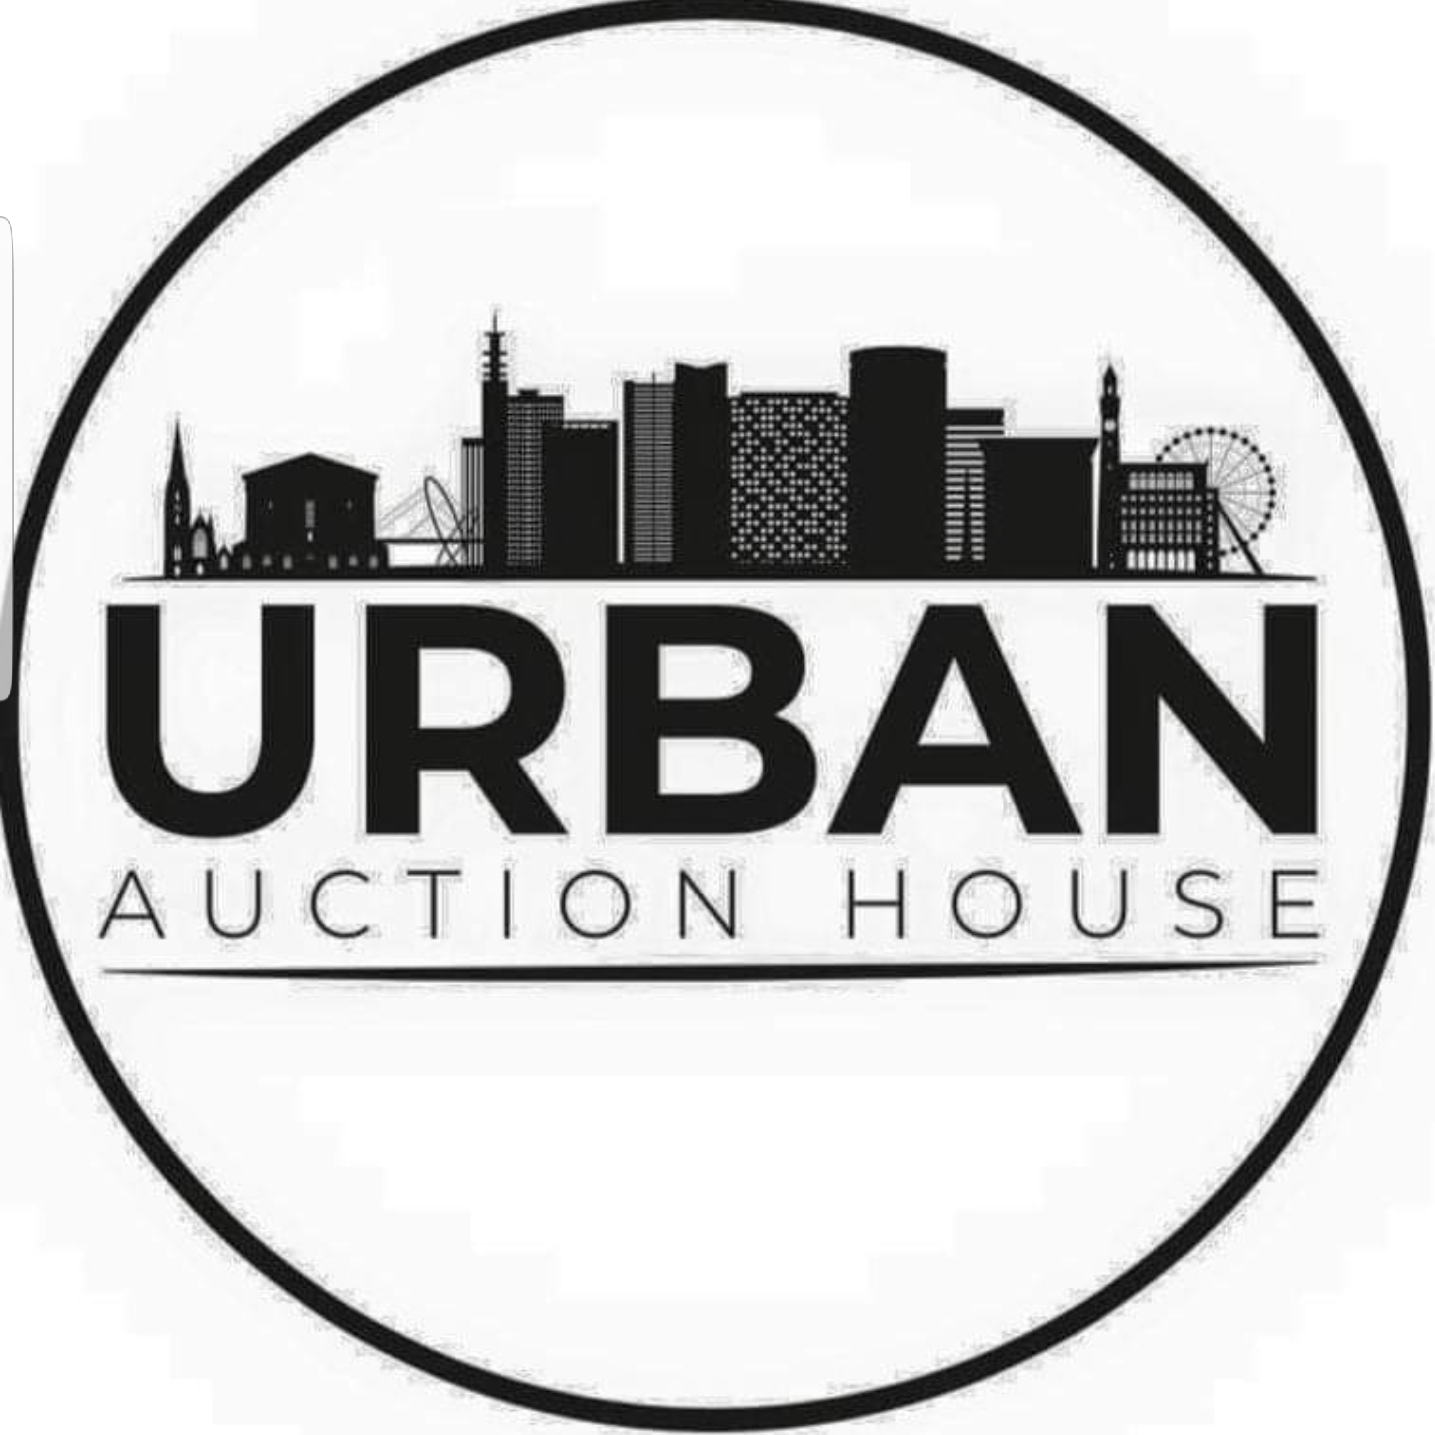 The Urban Auction